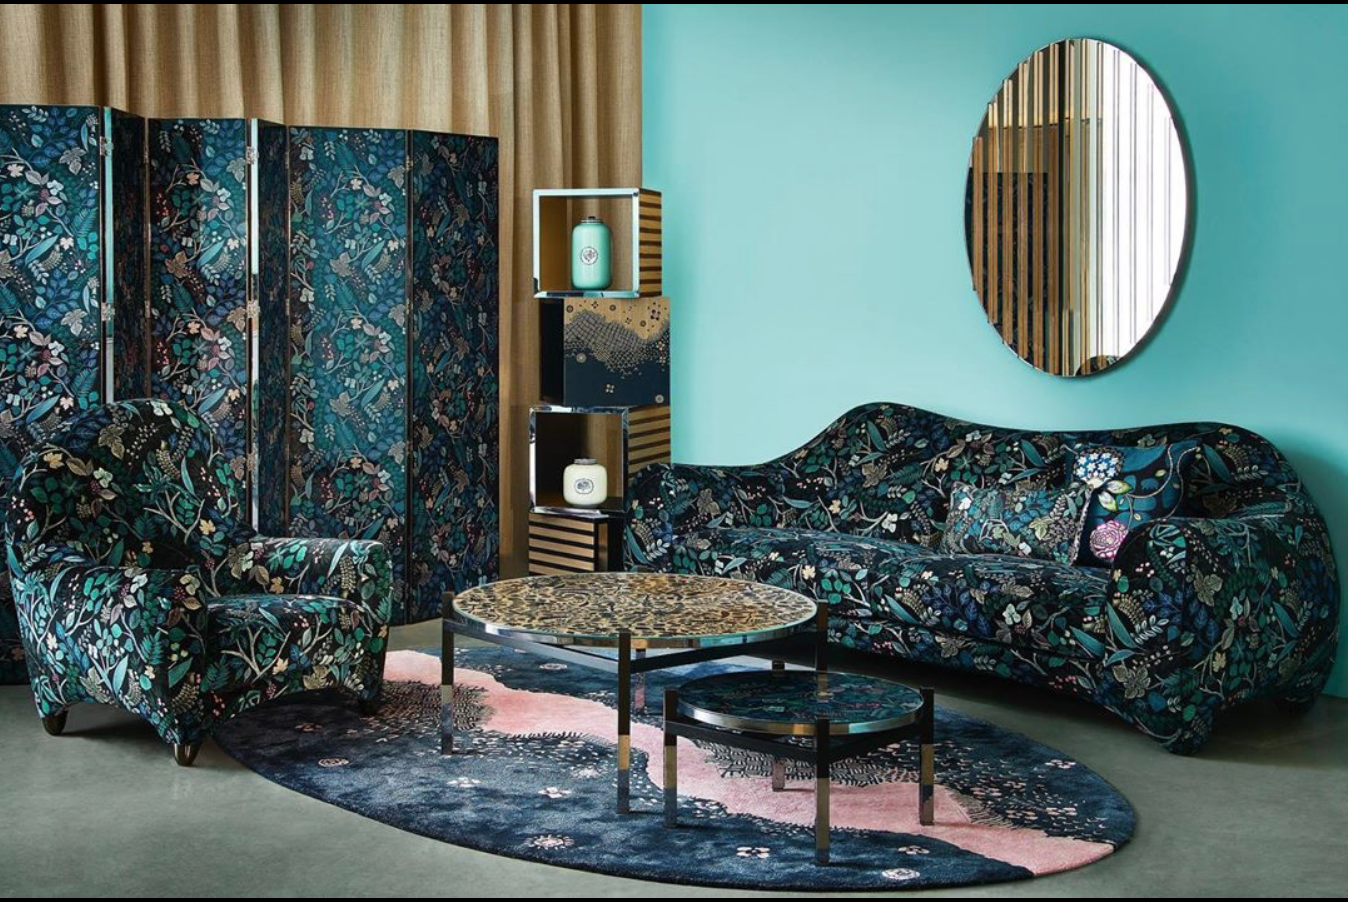 Roche Bobois Paris 7 introducing 'bois paradis' – our third collaboration with